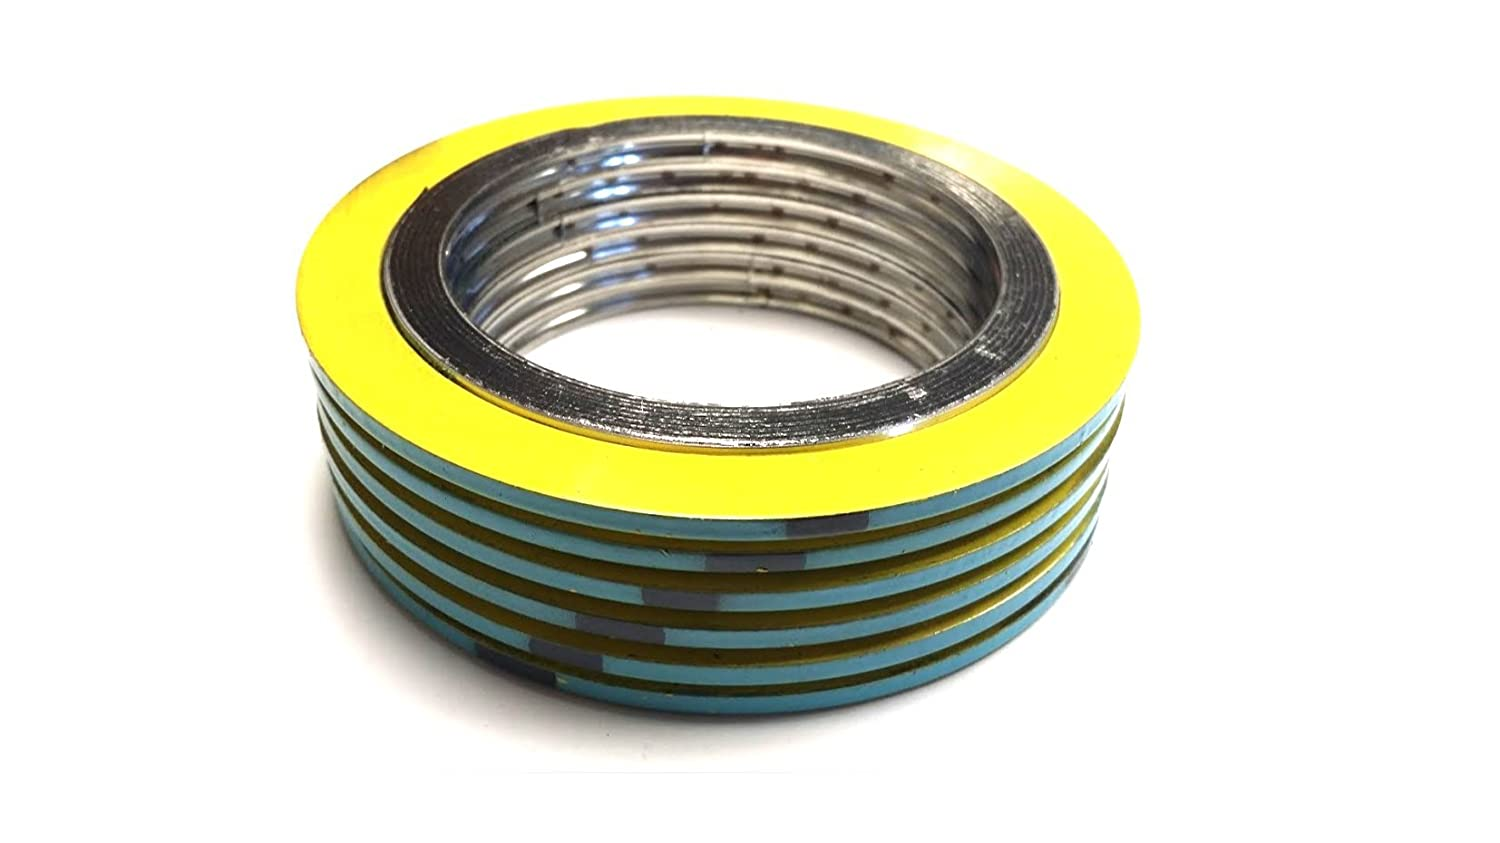 Turquoise 2.88 Outside Diameter 1.25 Inside Diameter 321SS//FG Inc Teadit 90001321GR600 Spiral Wound Gasket Sur-Seal Flexible Graphite -150 to 850 Degree Fahrenheit Temperature Range for 1 Pipe Size